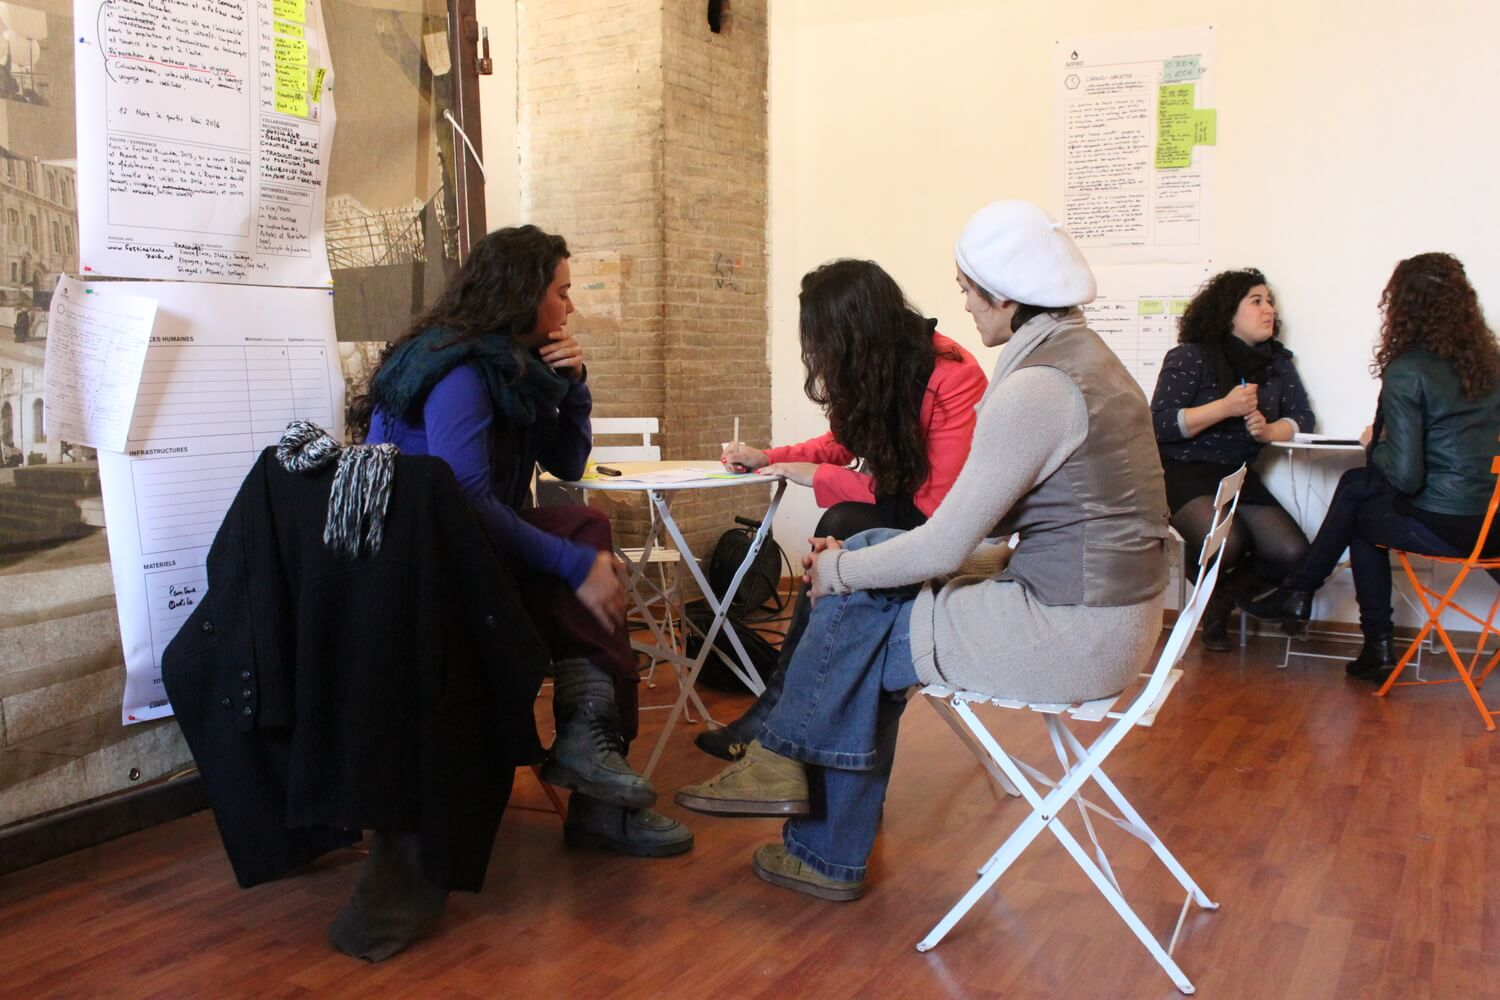 Working in smaller groups on campaigns during Goteo workshop at Les Tetes de l'Art